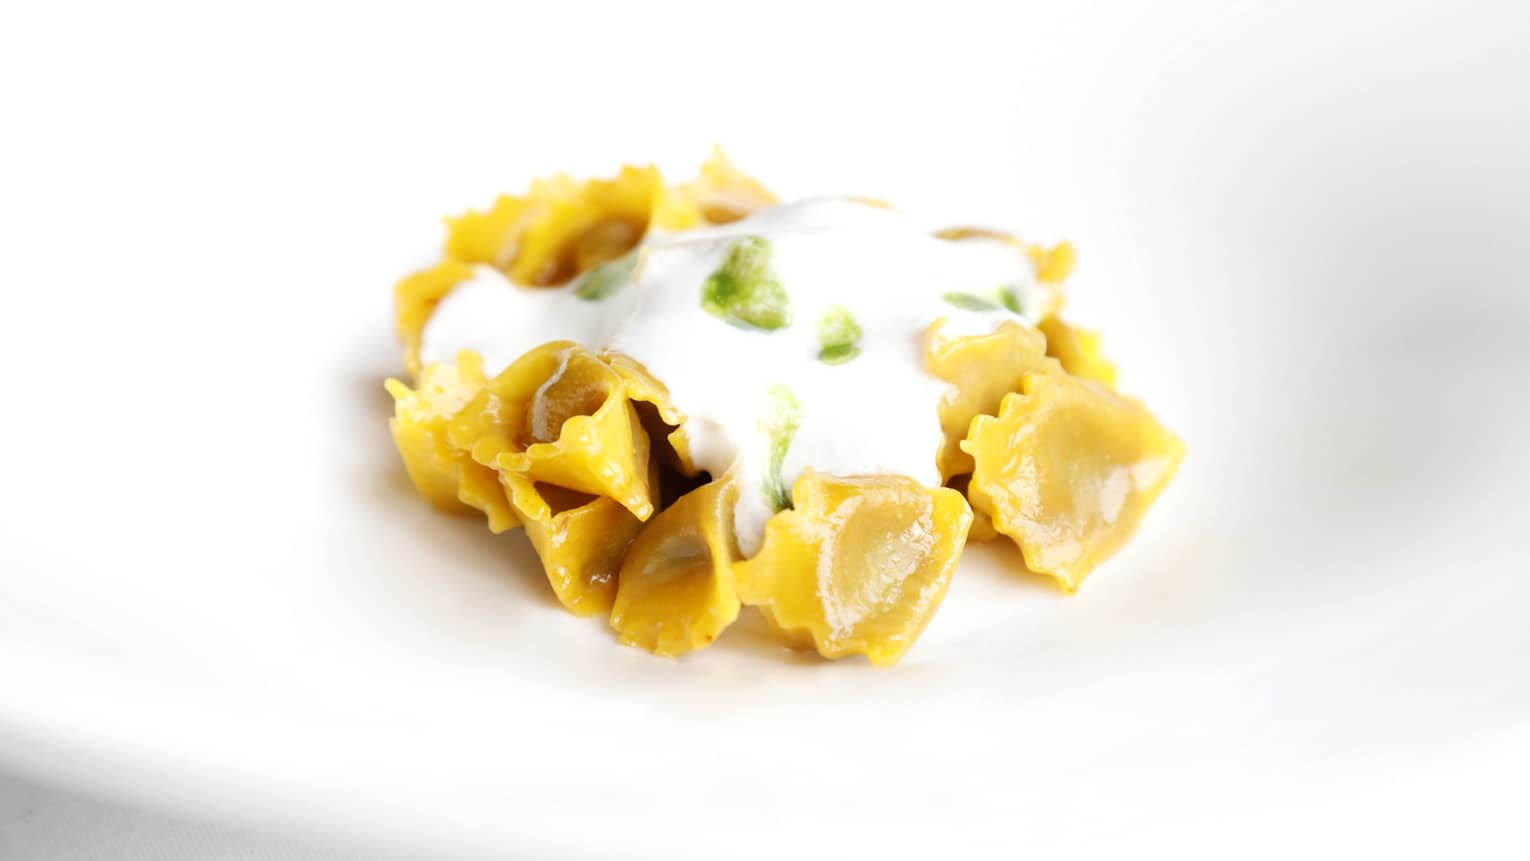 Veal-Filled Small Ravioli pasta on plate smothered in white cheese sauce